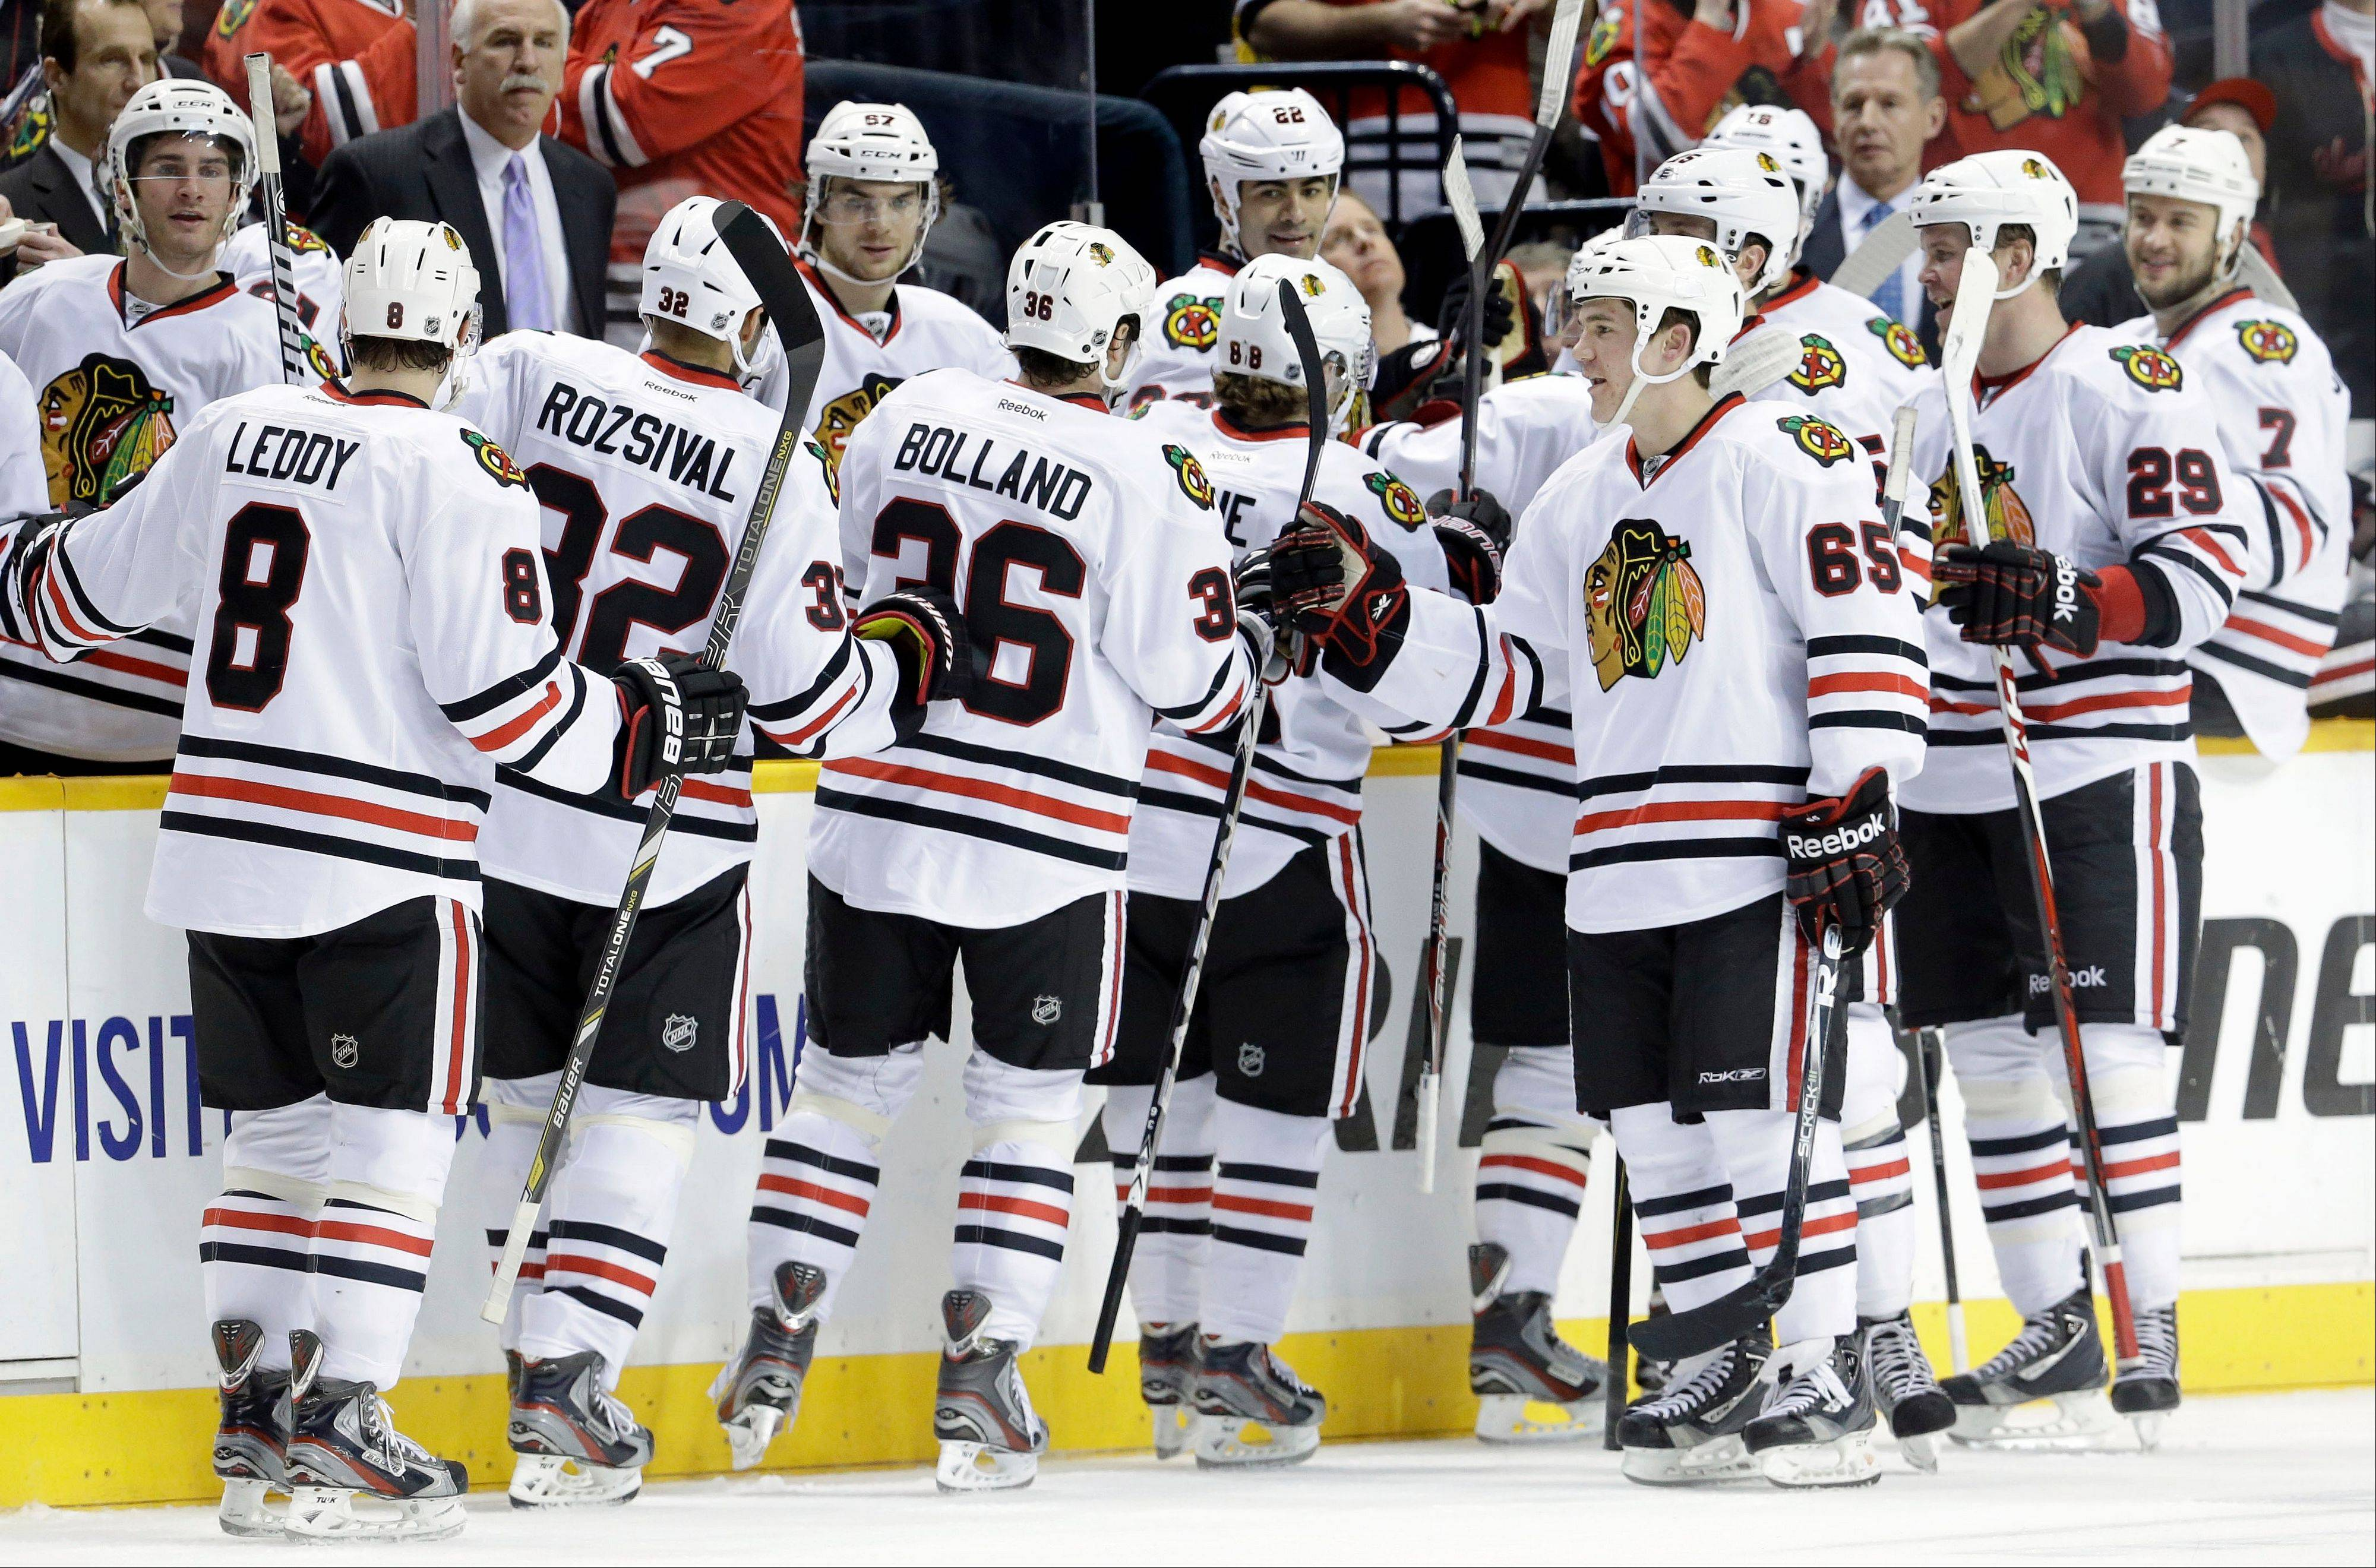 Chicago Blackhawks players celebrate a goal by Patrick Kane against the Nashville Predators in the third period of an NHL hockey game on Sunday, Feb. 10, 2013, in Nashville, Tenn. The Blackhawks won 3-0.